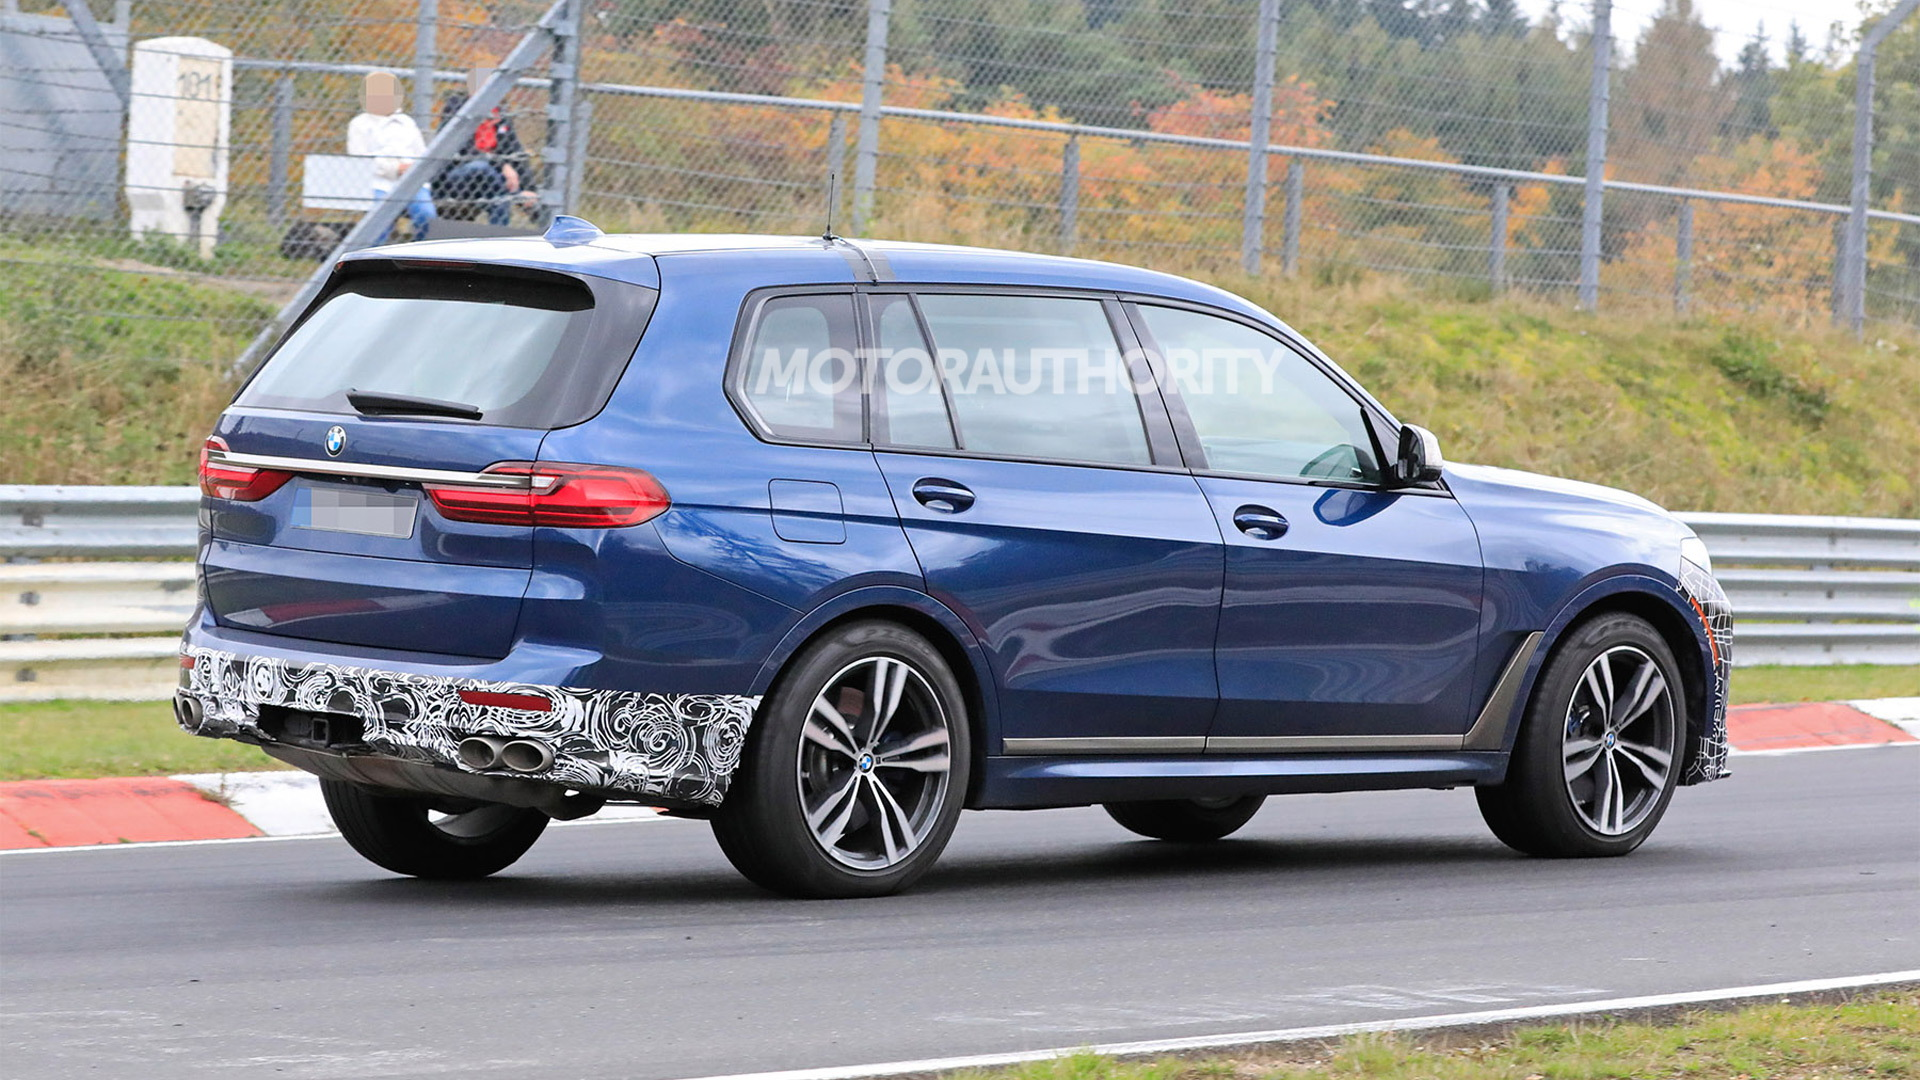 2021 BMW Alpina XB7 spy shots - Photo credit: S. Baldauf/SB-Medien